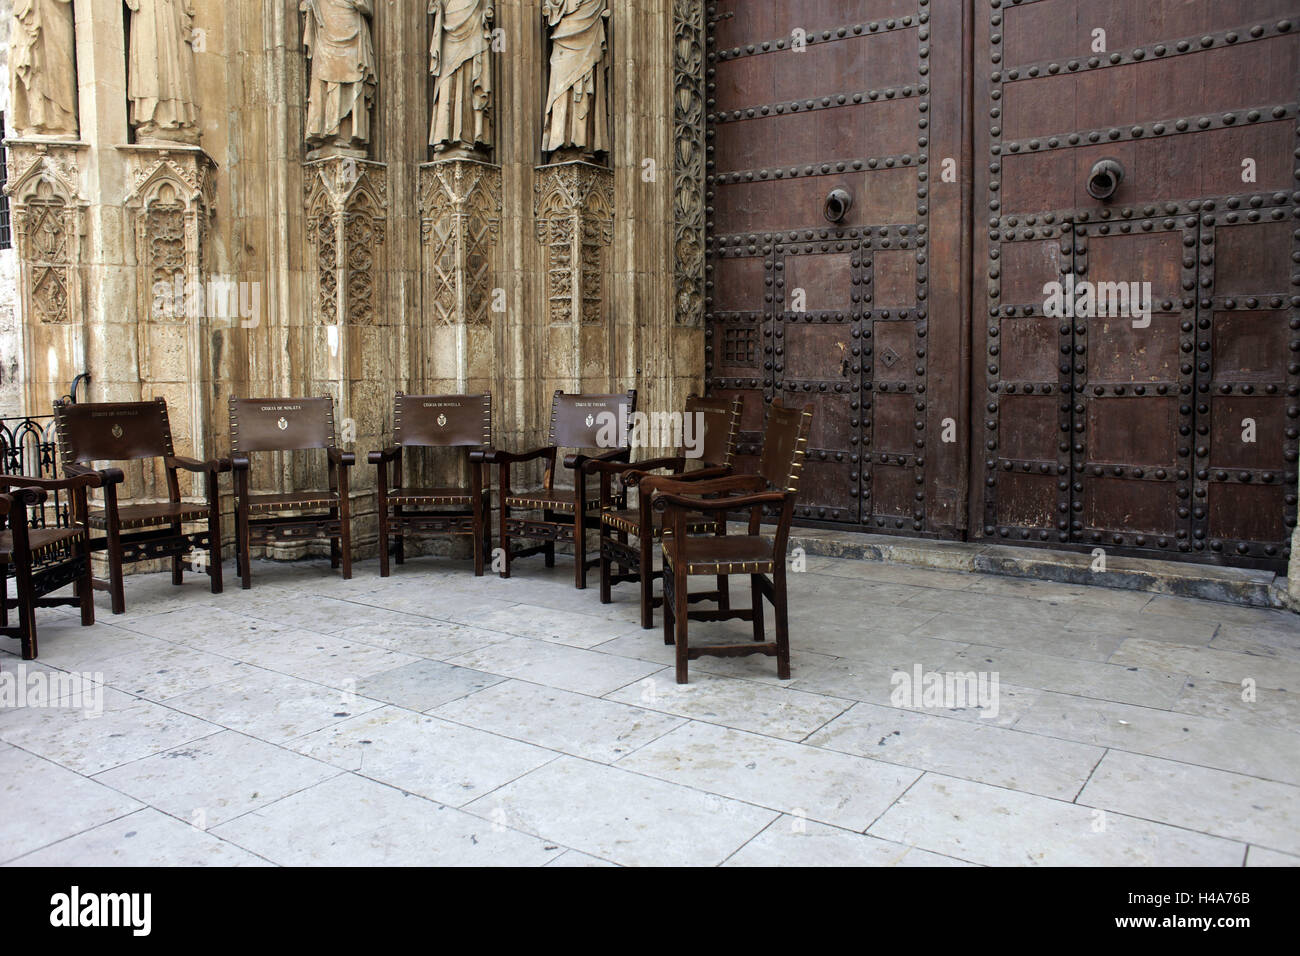 spain valencia cathedral inside no people church chairs wooden chairs door closed